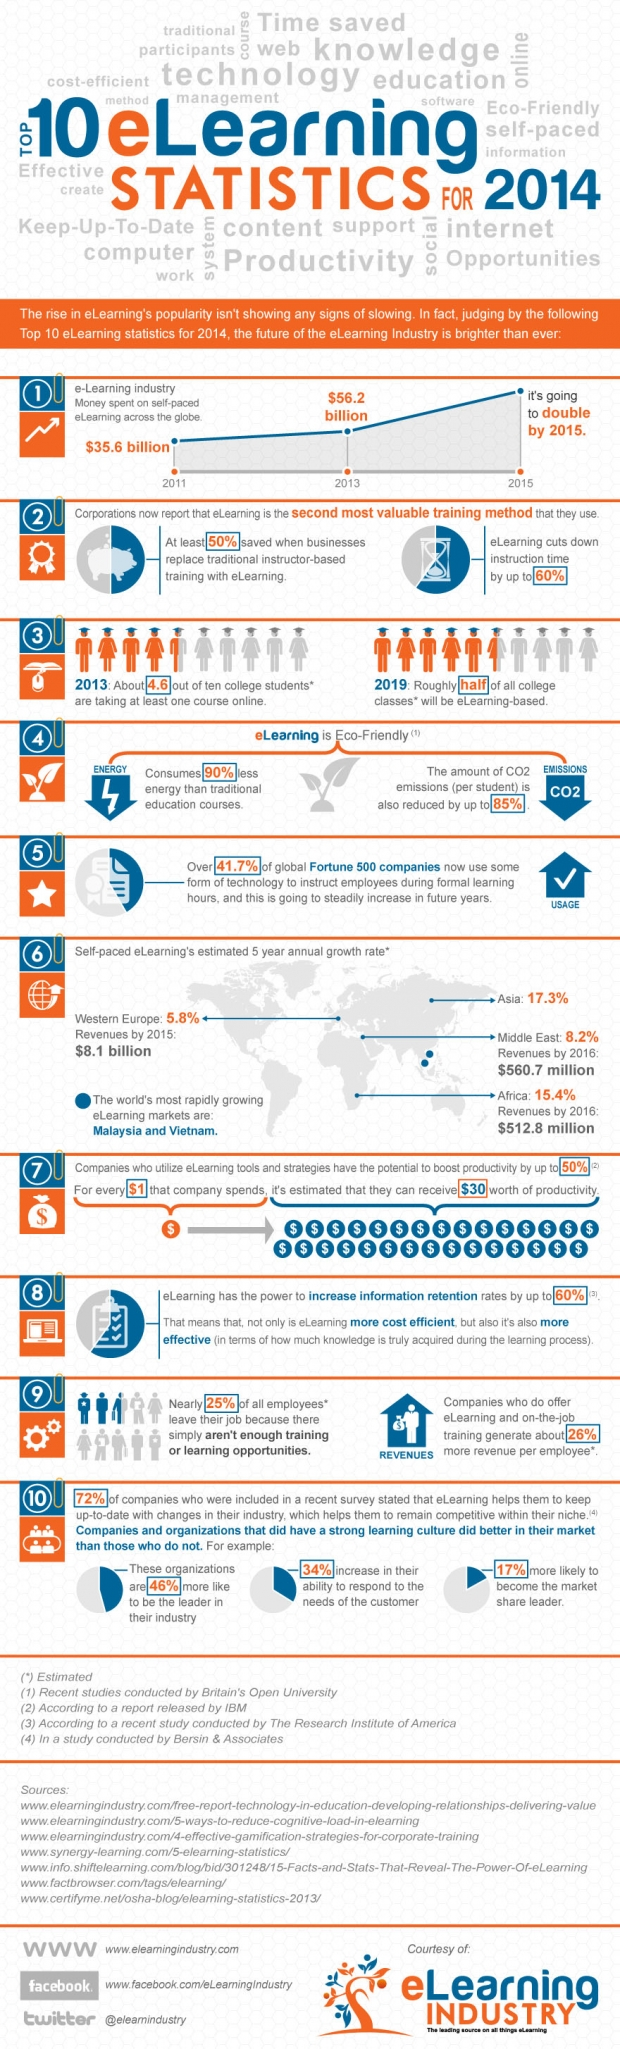 eLearning Statistics for 2014